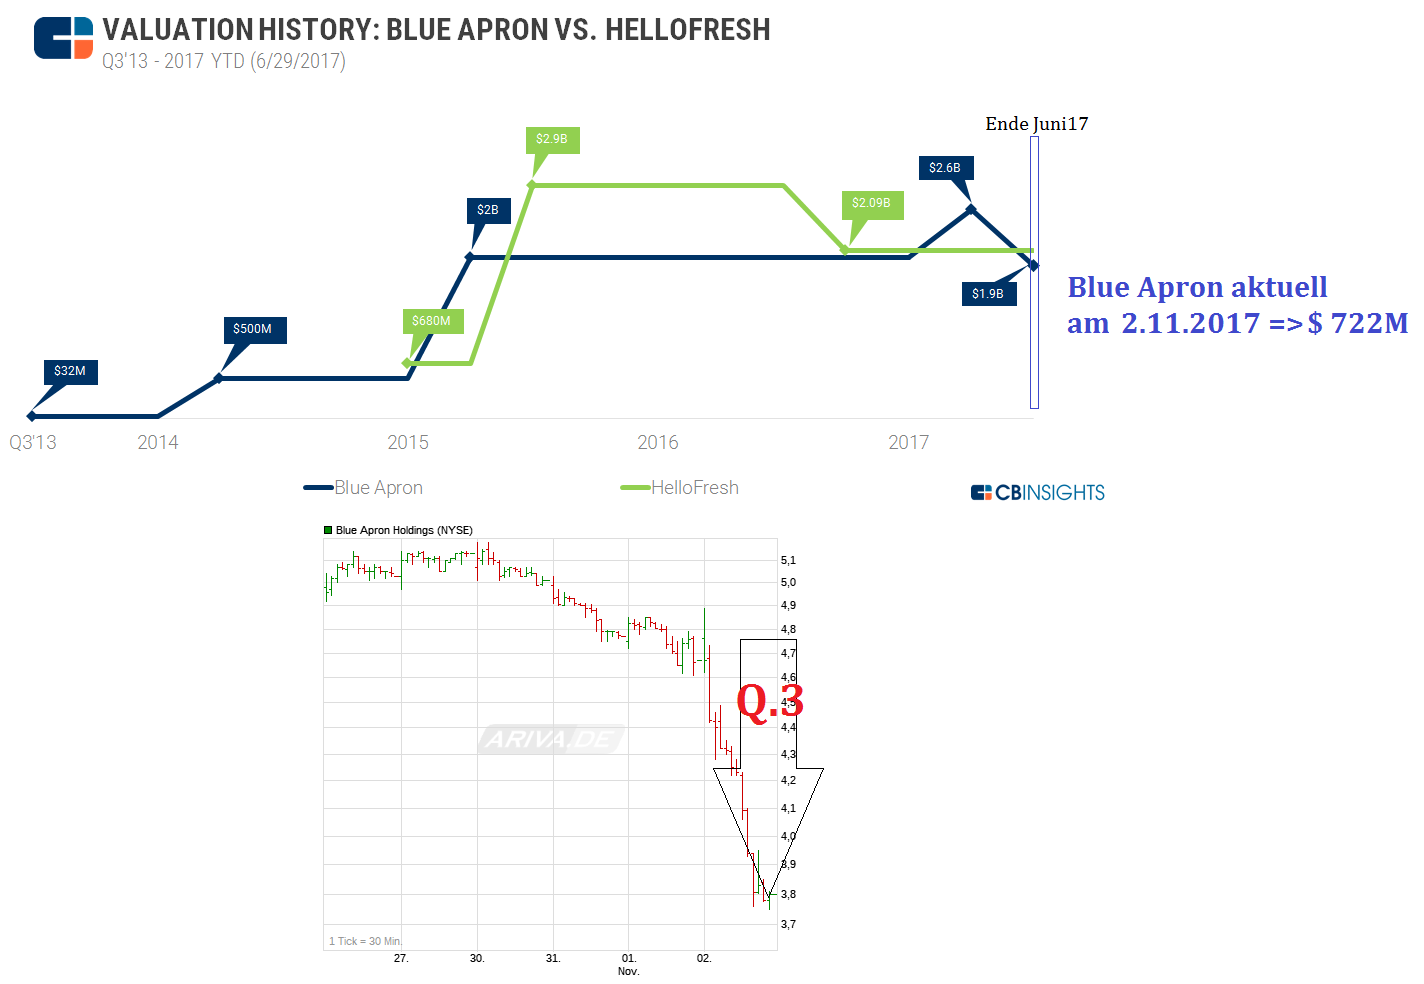 valuation-history-blue-apron-hellofresh-_6.png